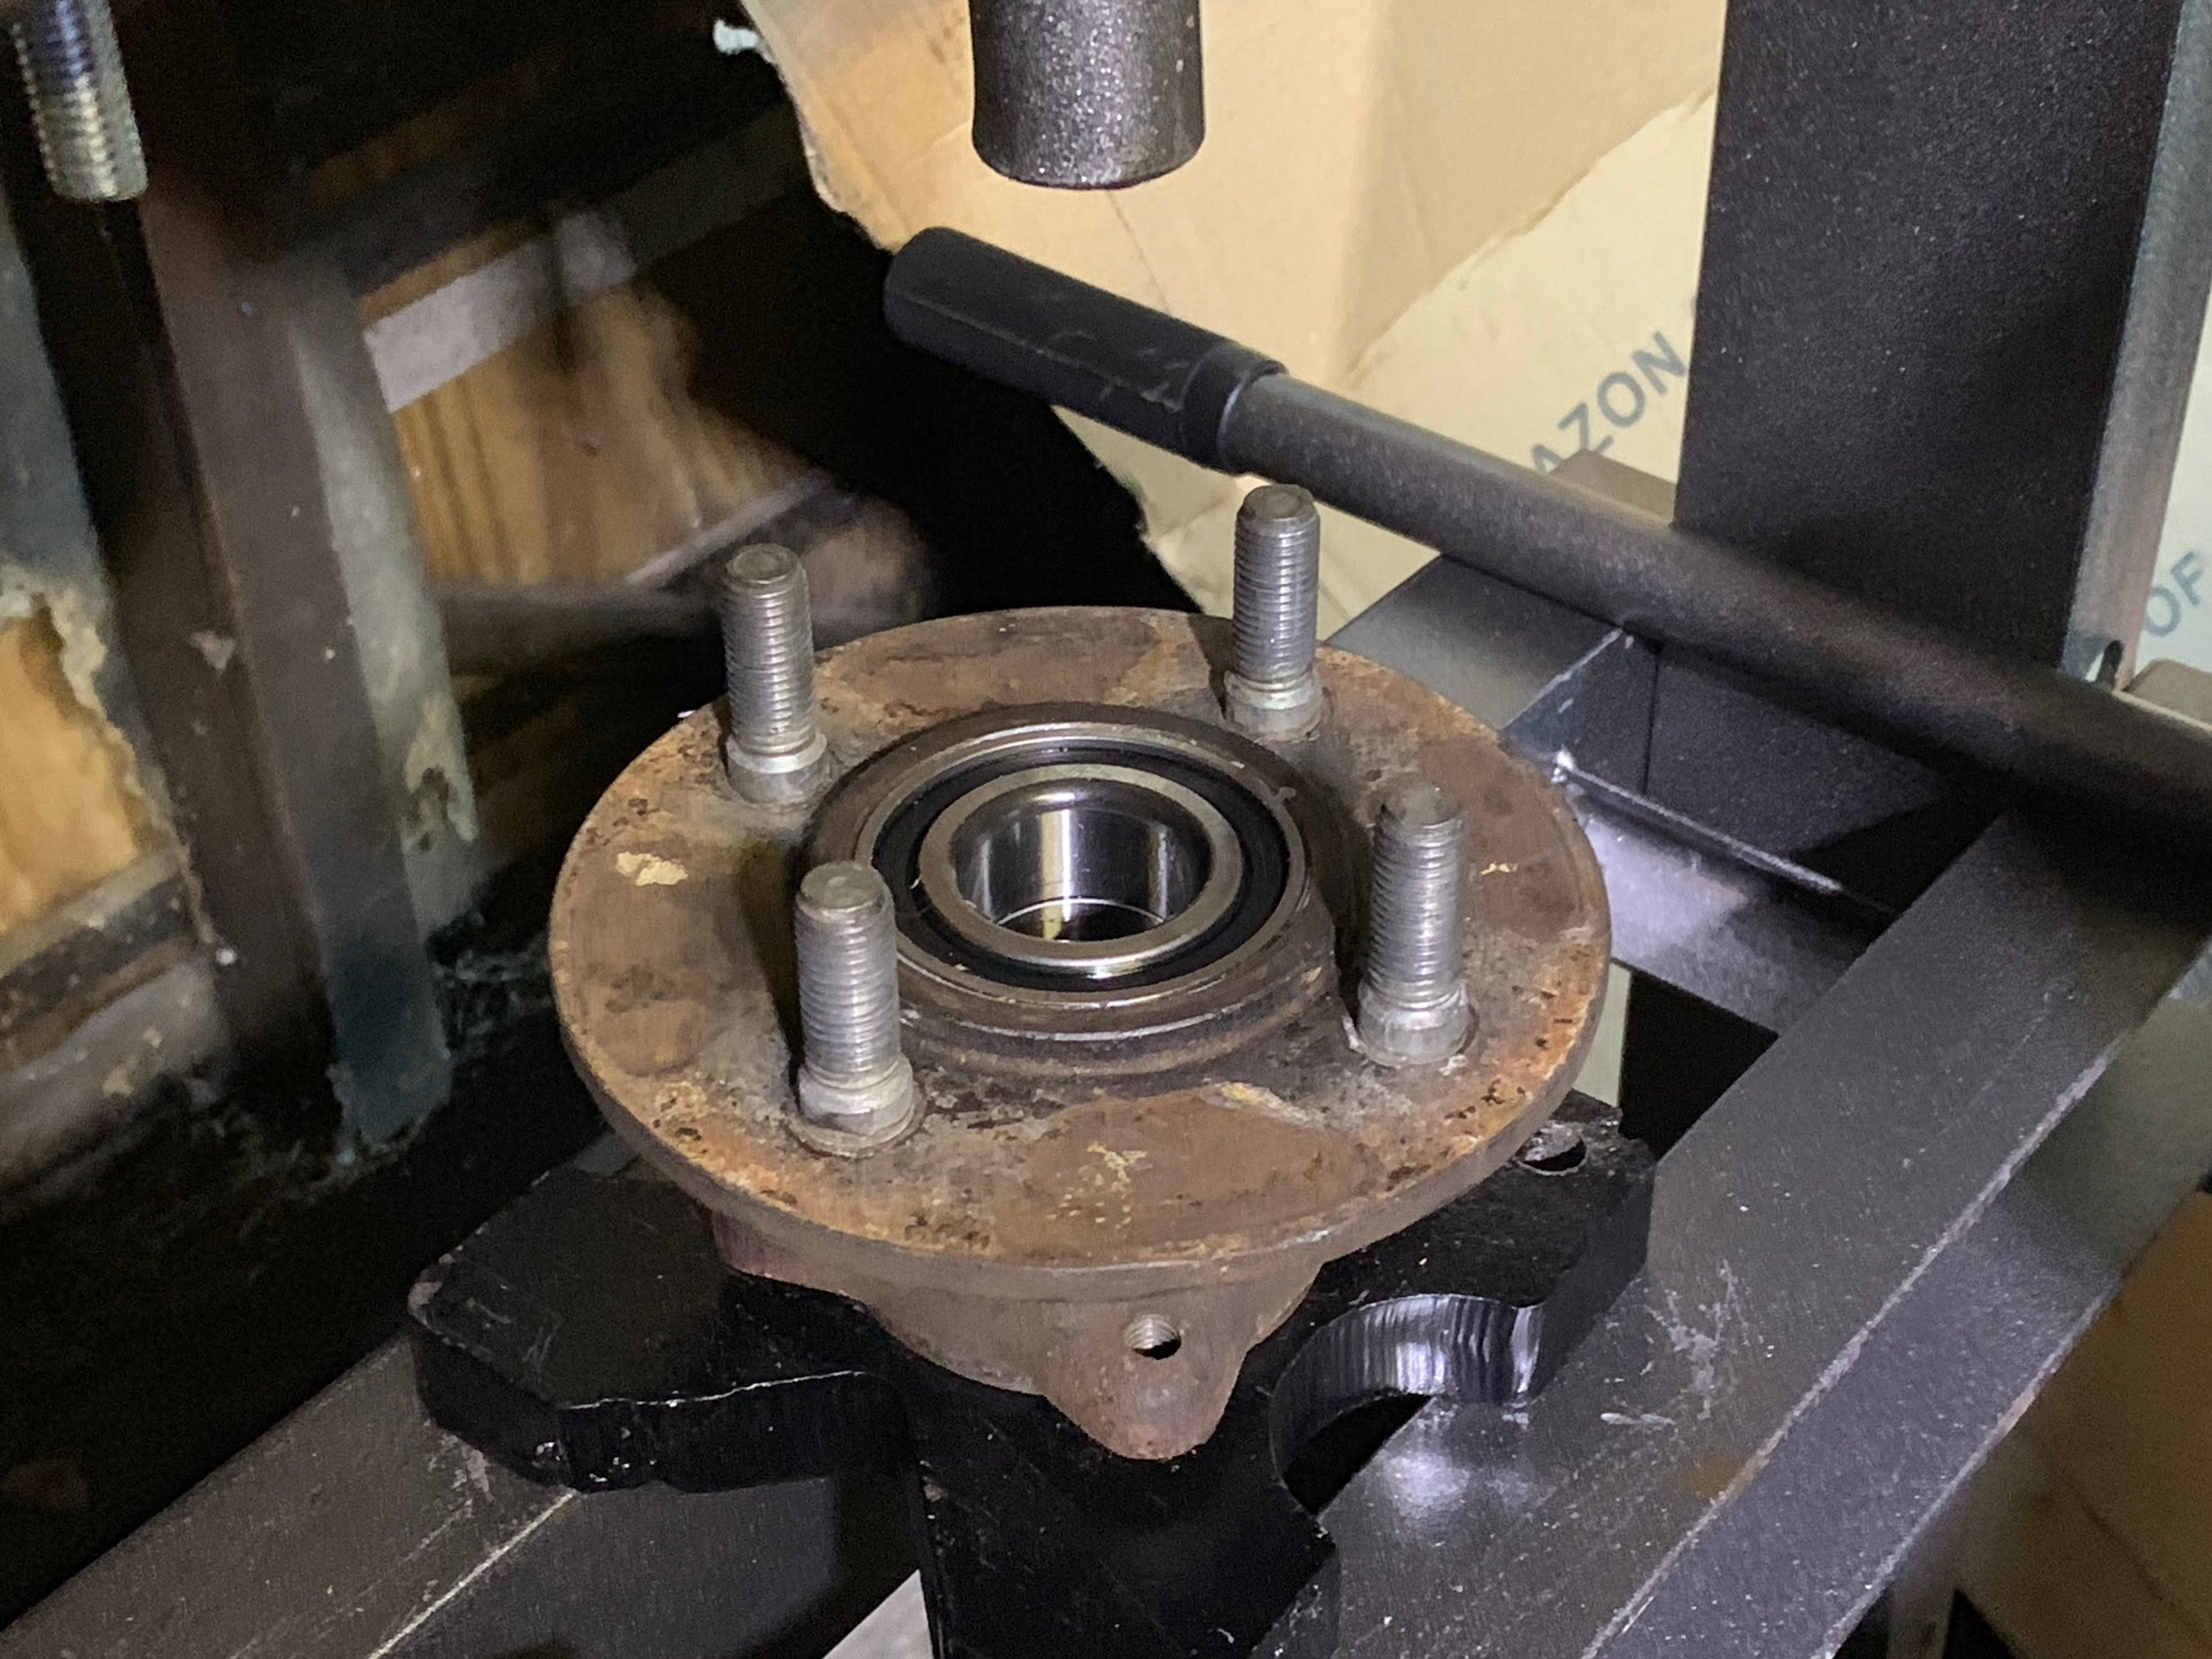 The new bearing pressed into the hub with the plate, bringing it flush to the surface. It still needs to be pressed in further by using the old bearing as a pusher.